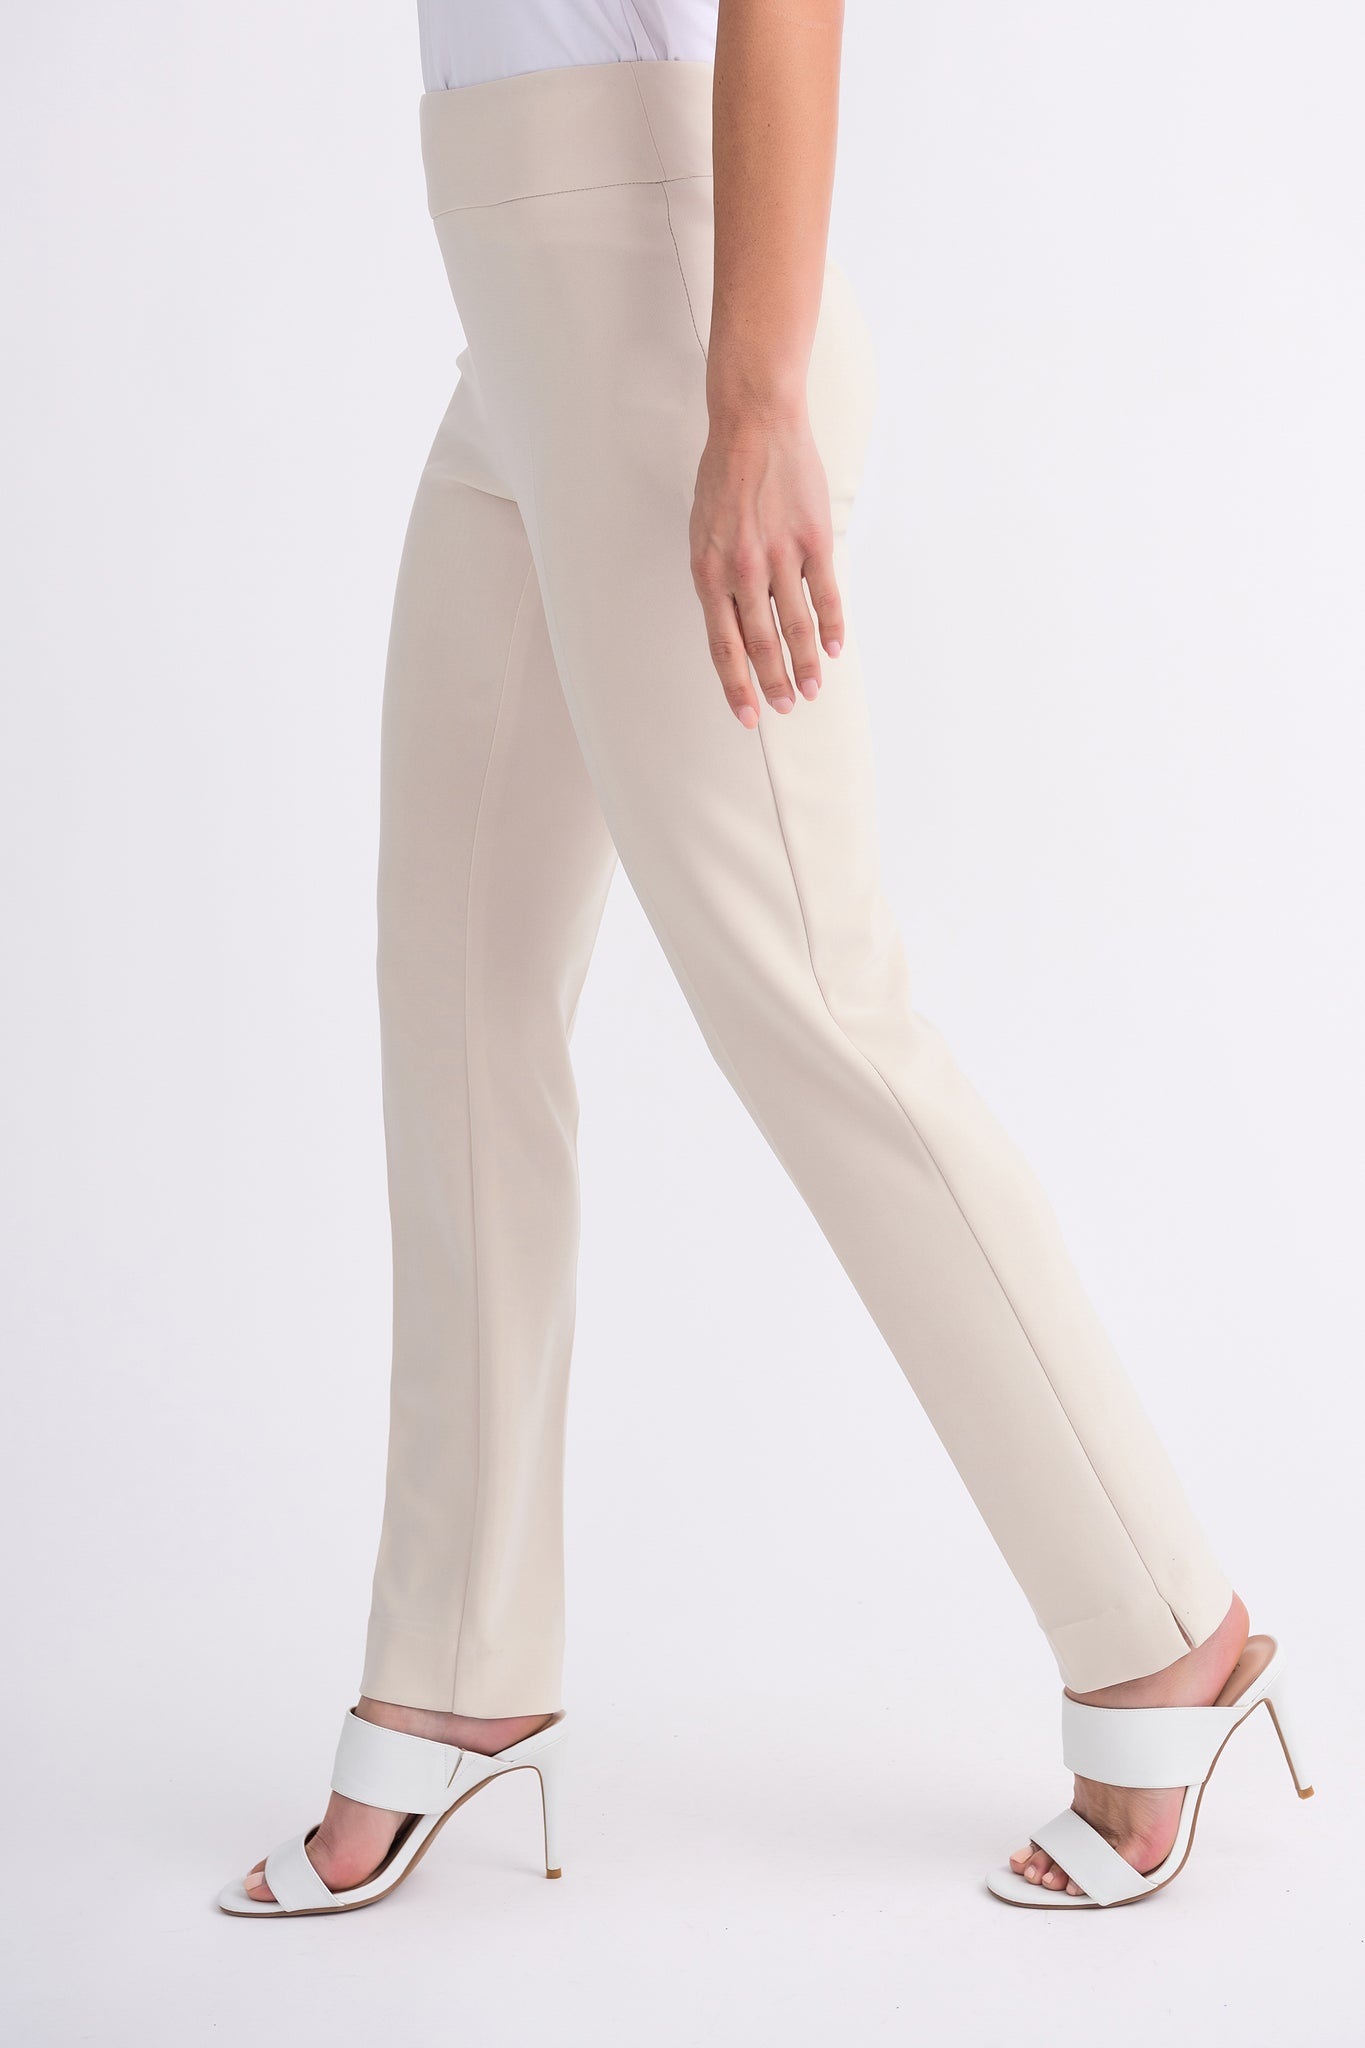 Joseph Ribkoff Contour Slim Fit Pant - Champagne | Buy Online at Weekends